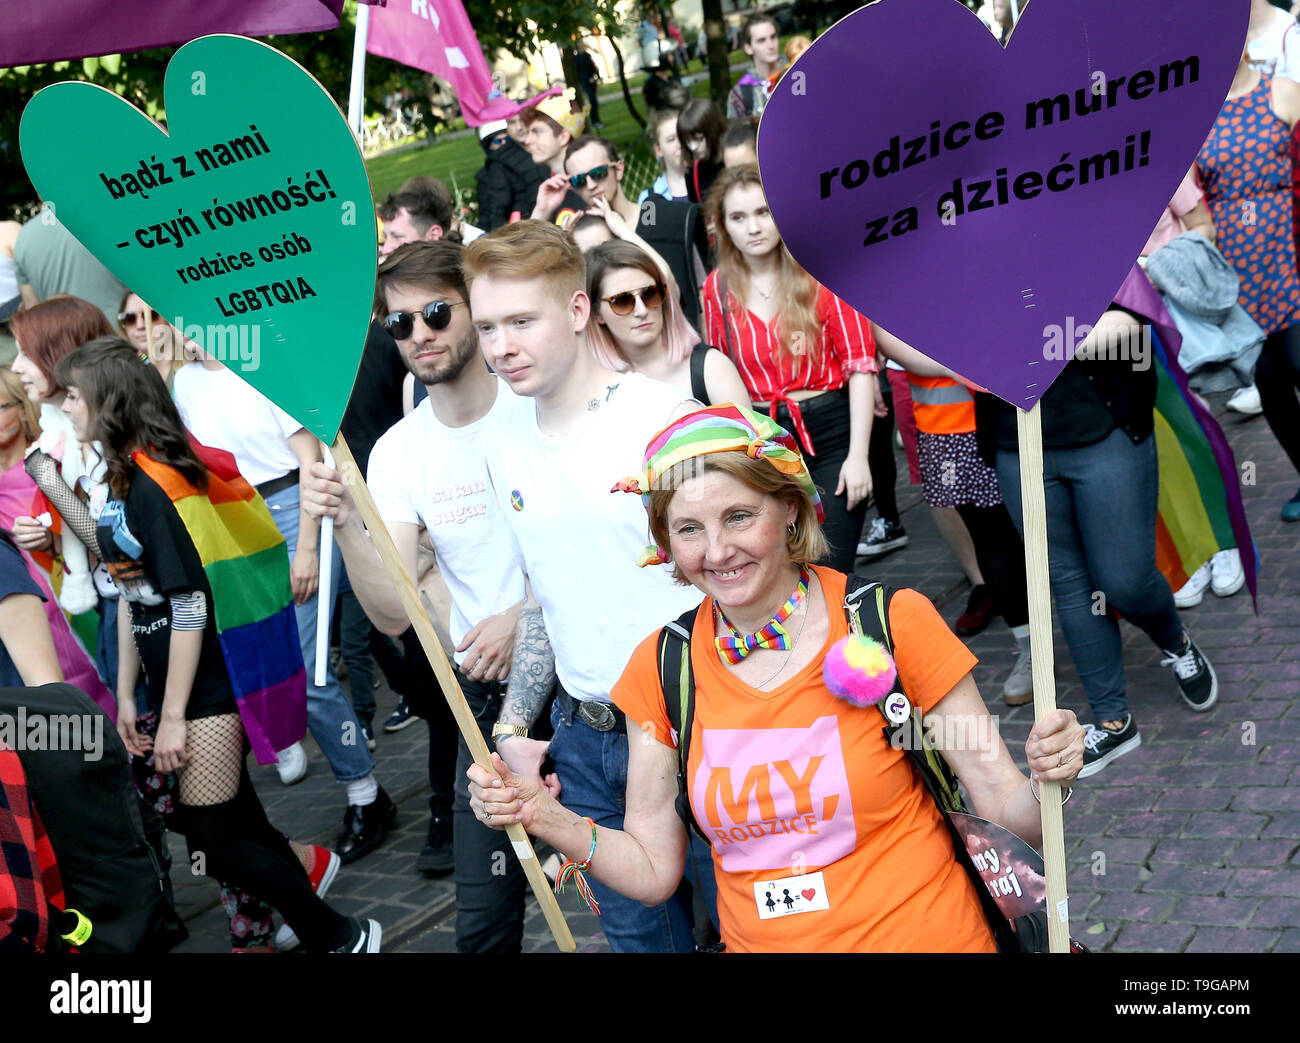 People are seen during the Equality March in Krakow. LGBT people and their supporters walk through the streets of Krakow to celebrate diversity and tolerance and express their opposition to discrimination and exclusion. The march was met in the city center by anti LGBT protesters from the far right organizations. - Stock Image